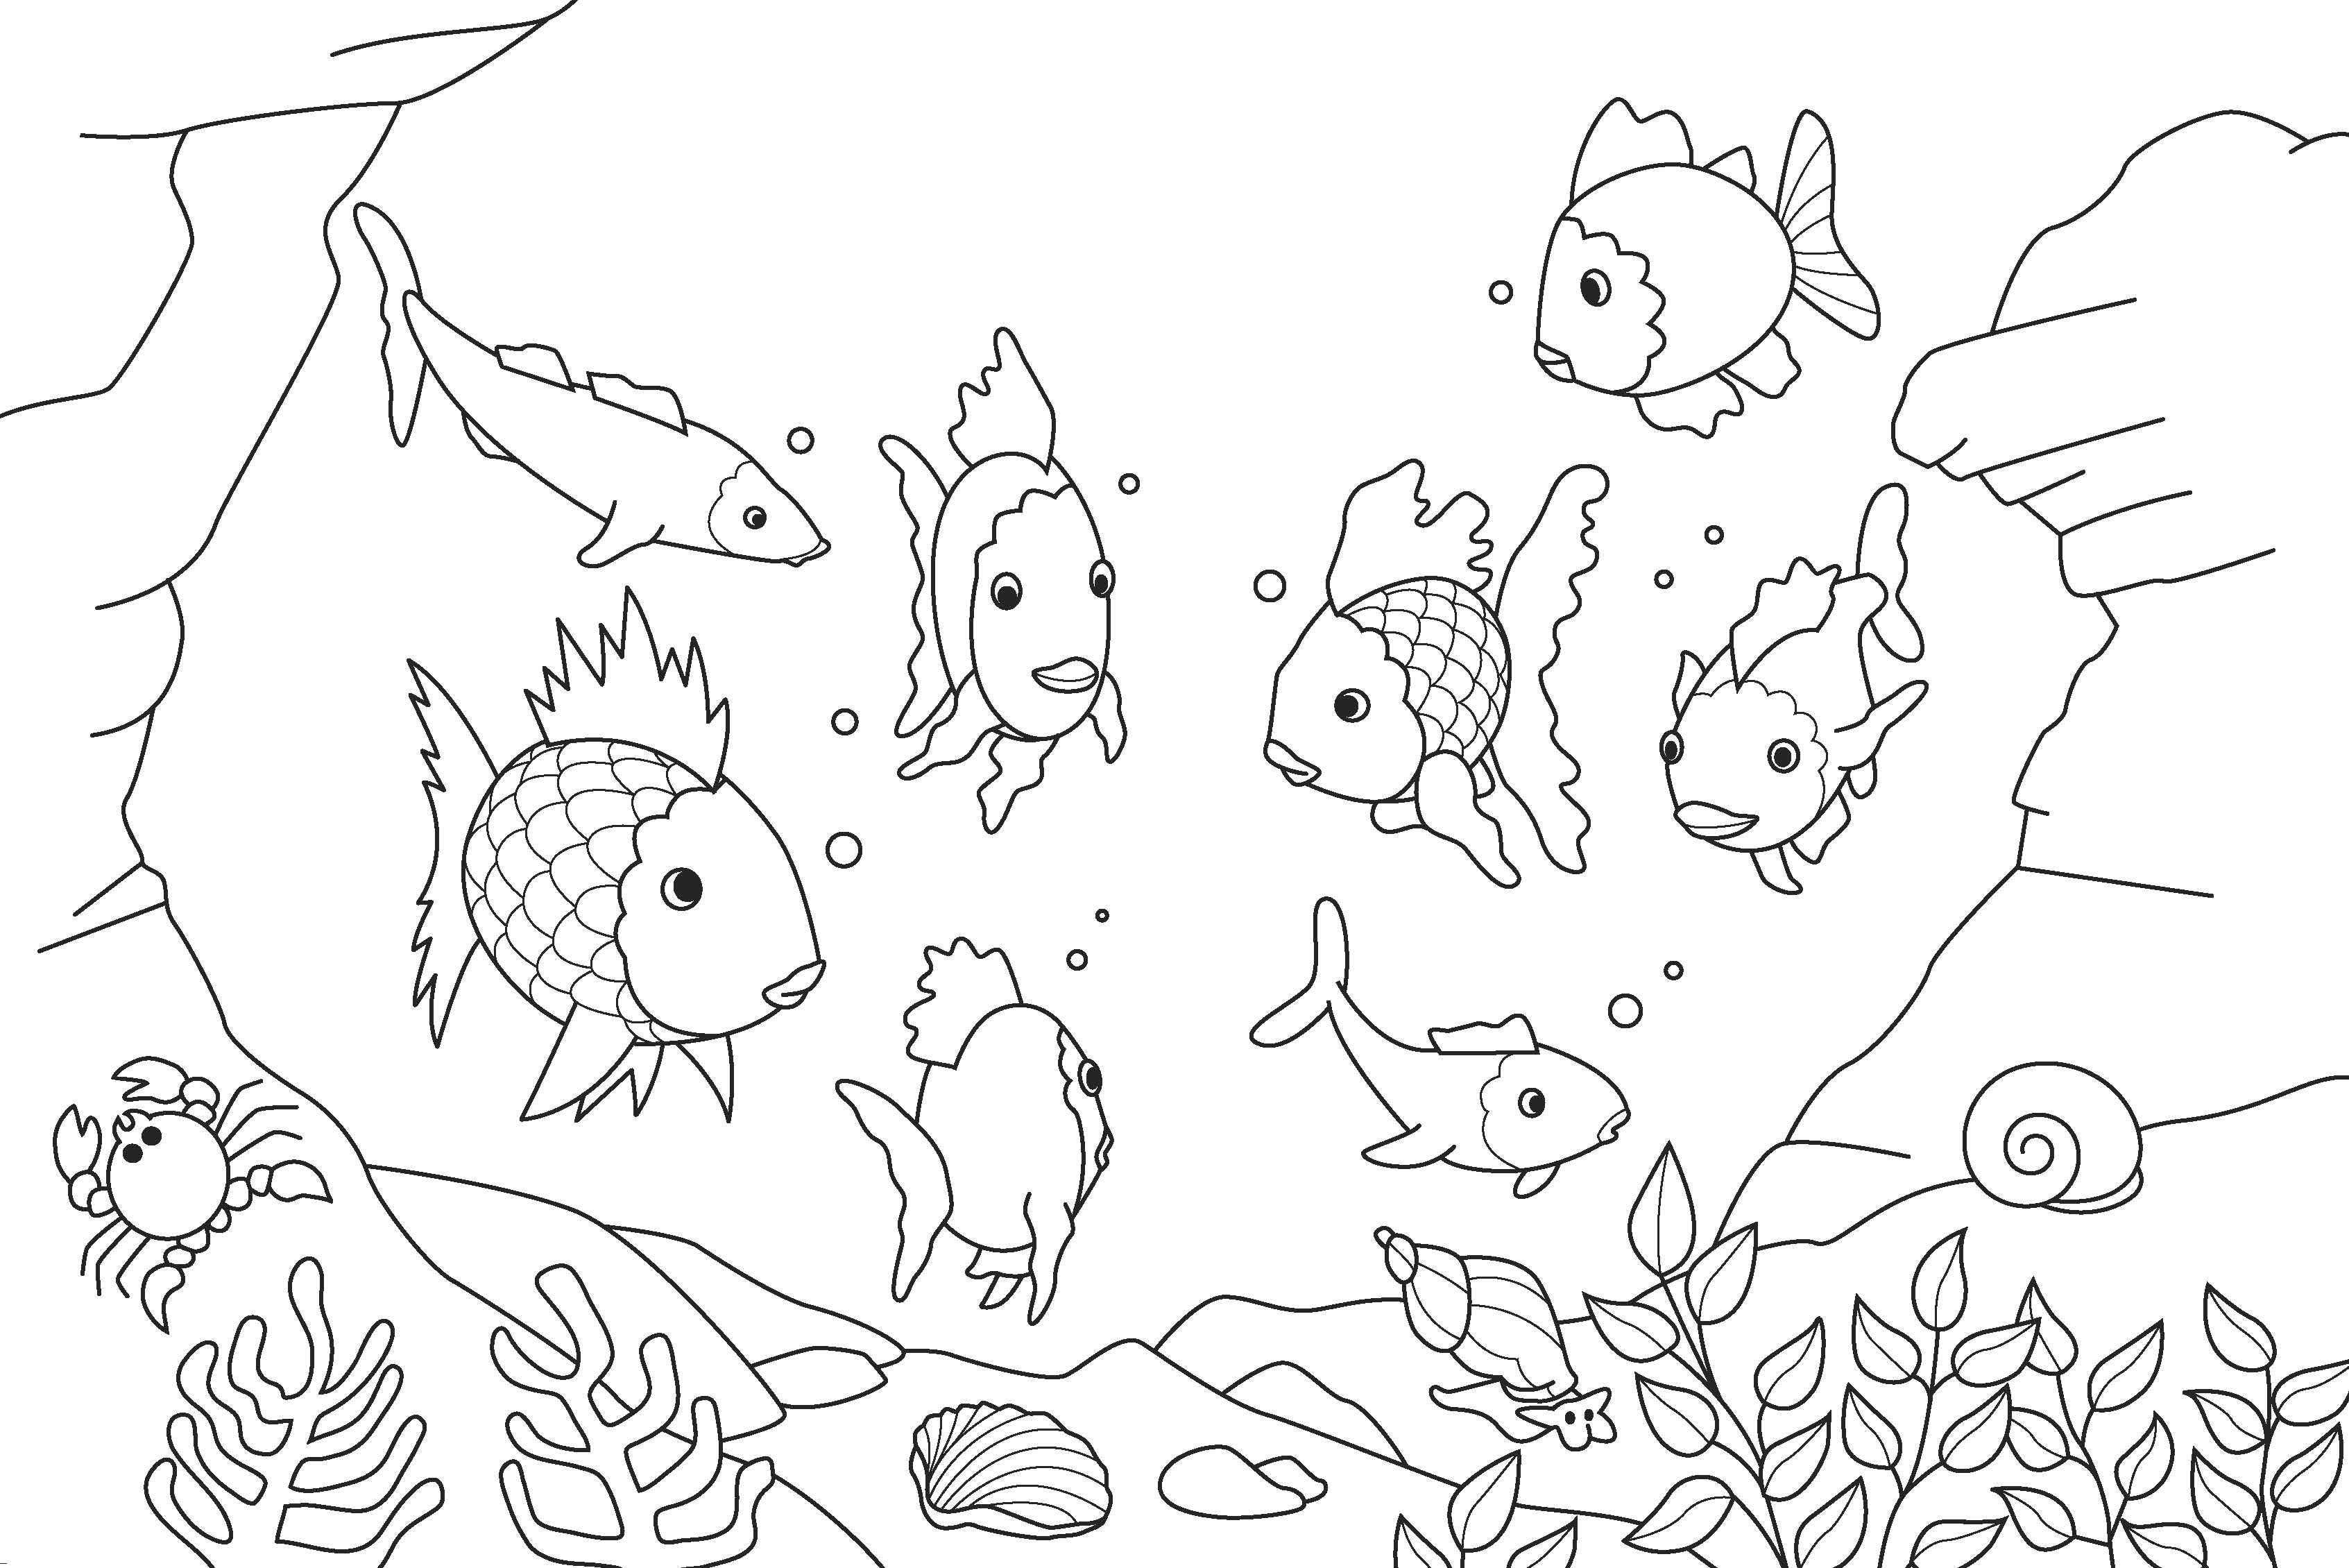 Adult Best Aquarium Coloring Page Images beauty coloring pages and search on pinterest gallery images